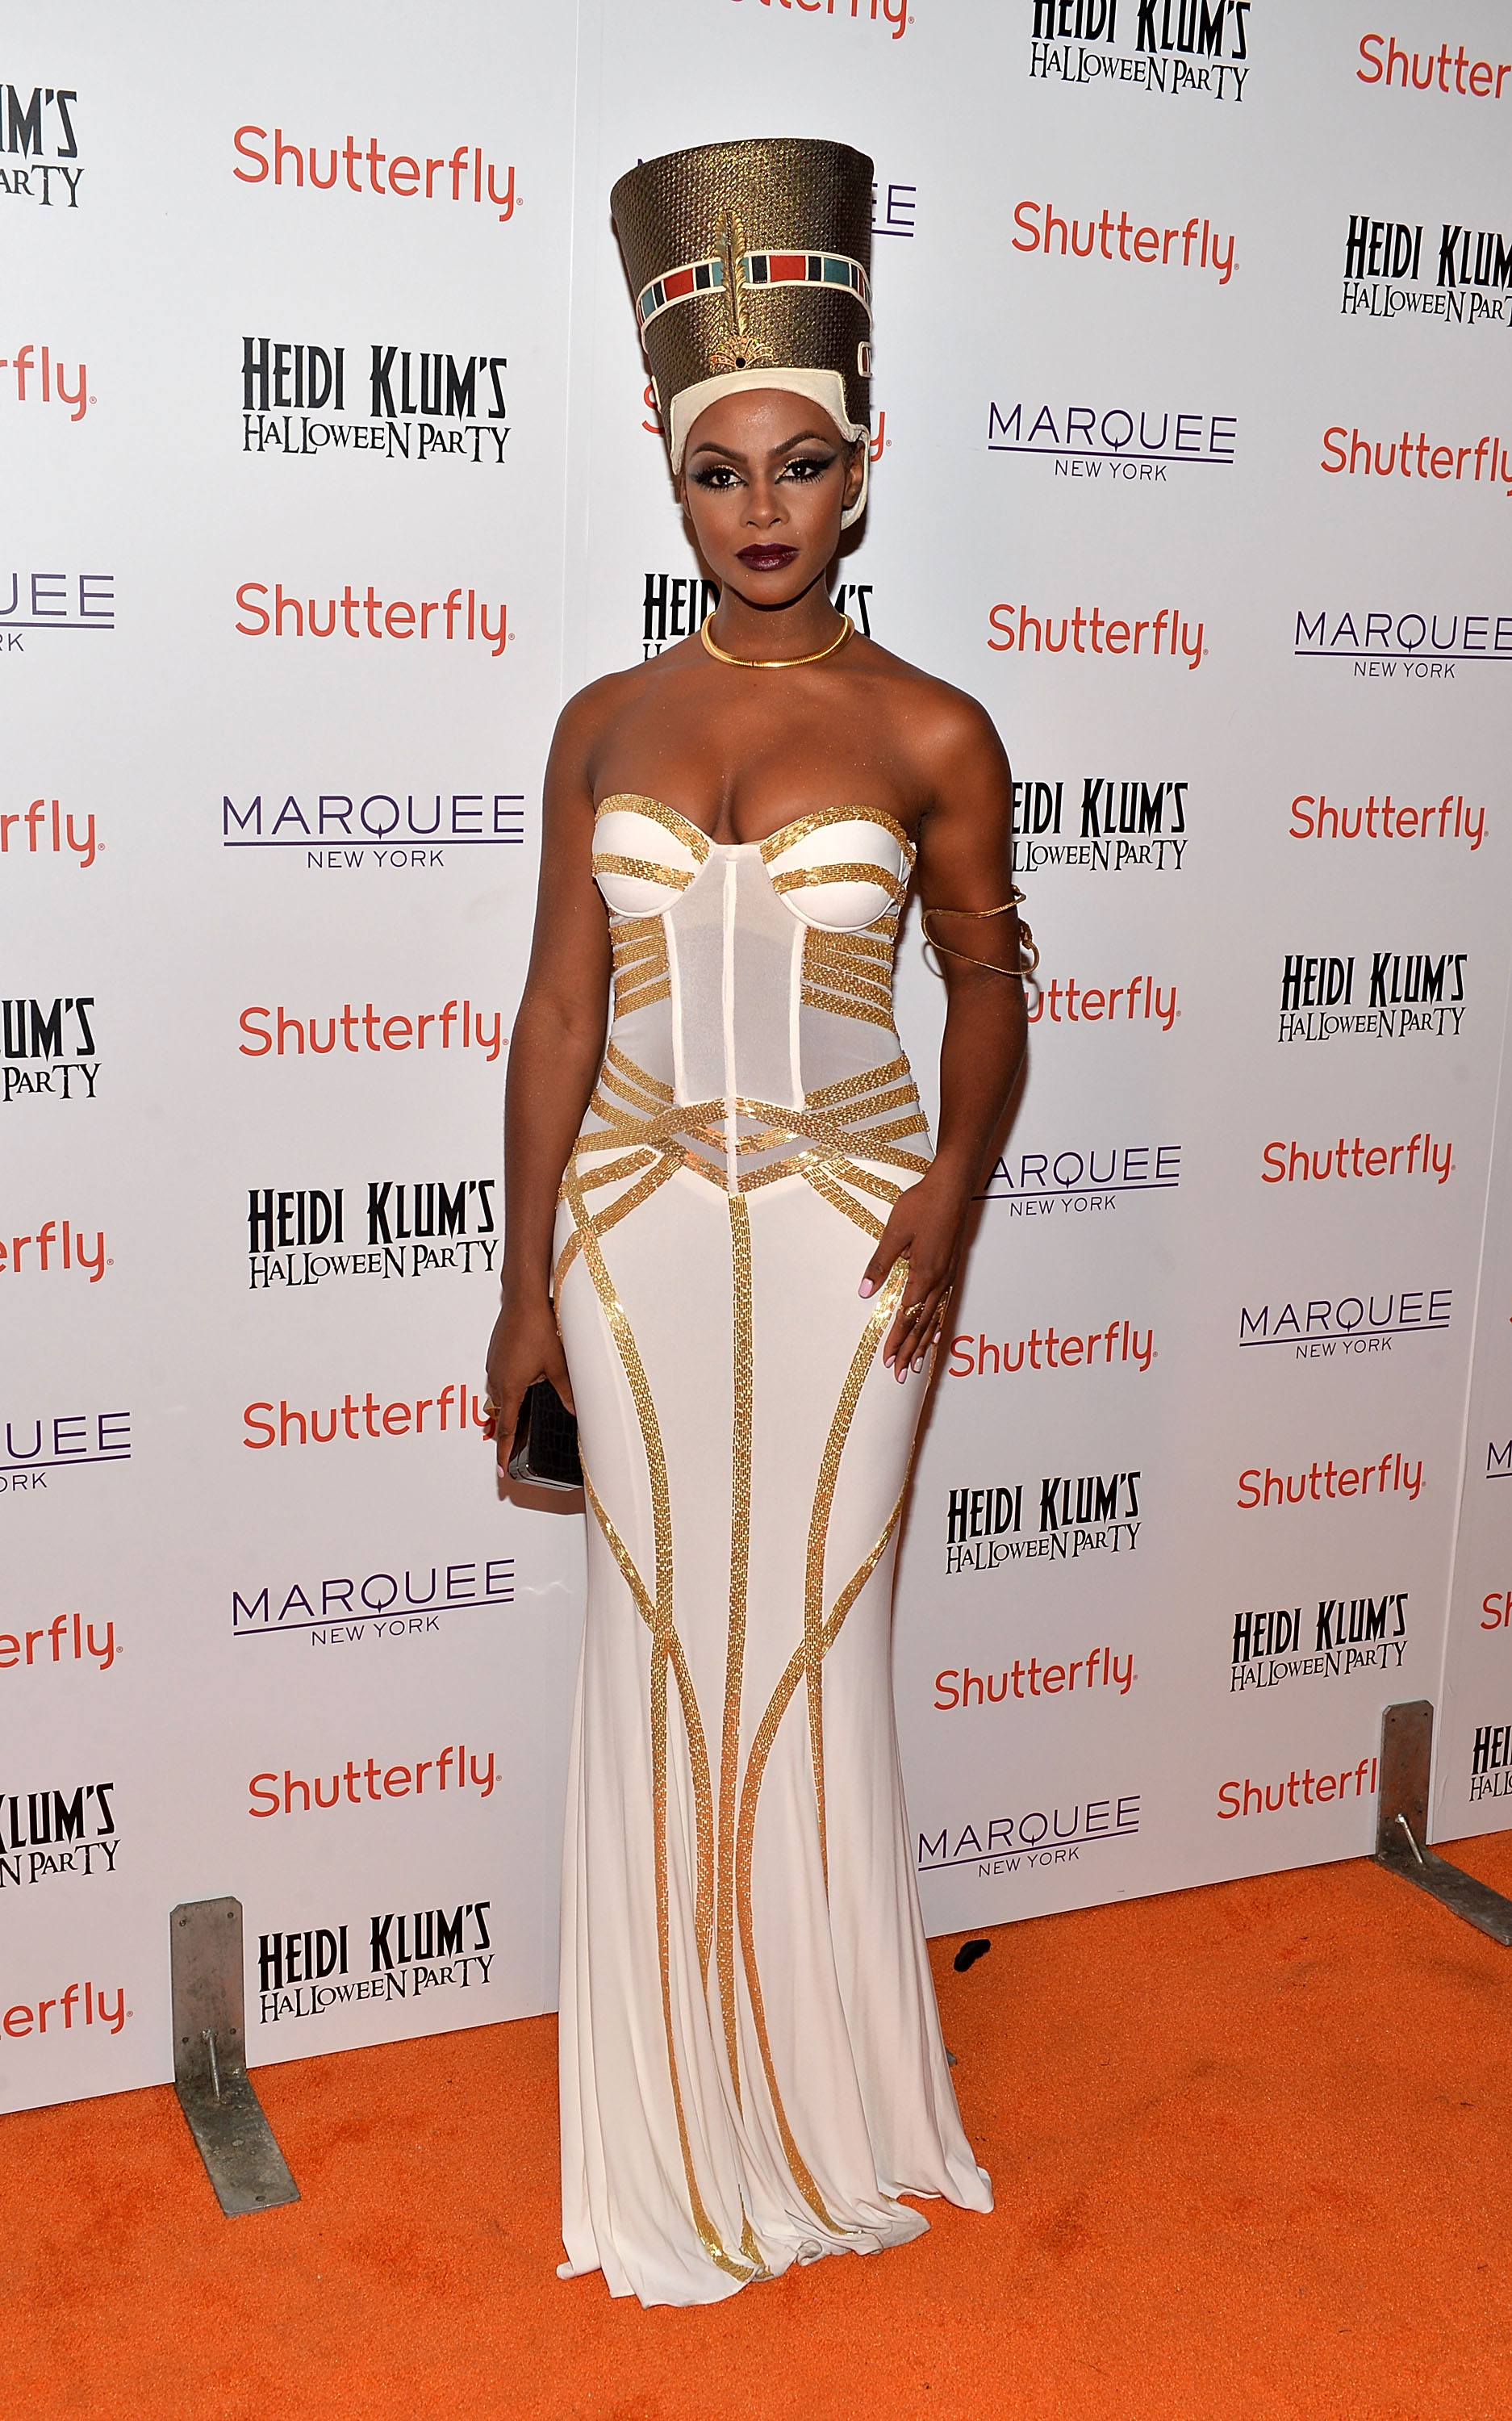 Actress Tika Sumpter :: Andrew H. Walker/Getty Images for Shutterfly